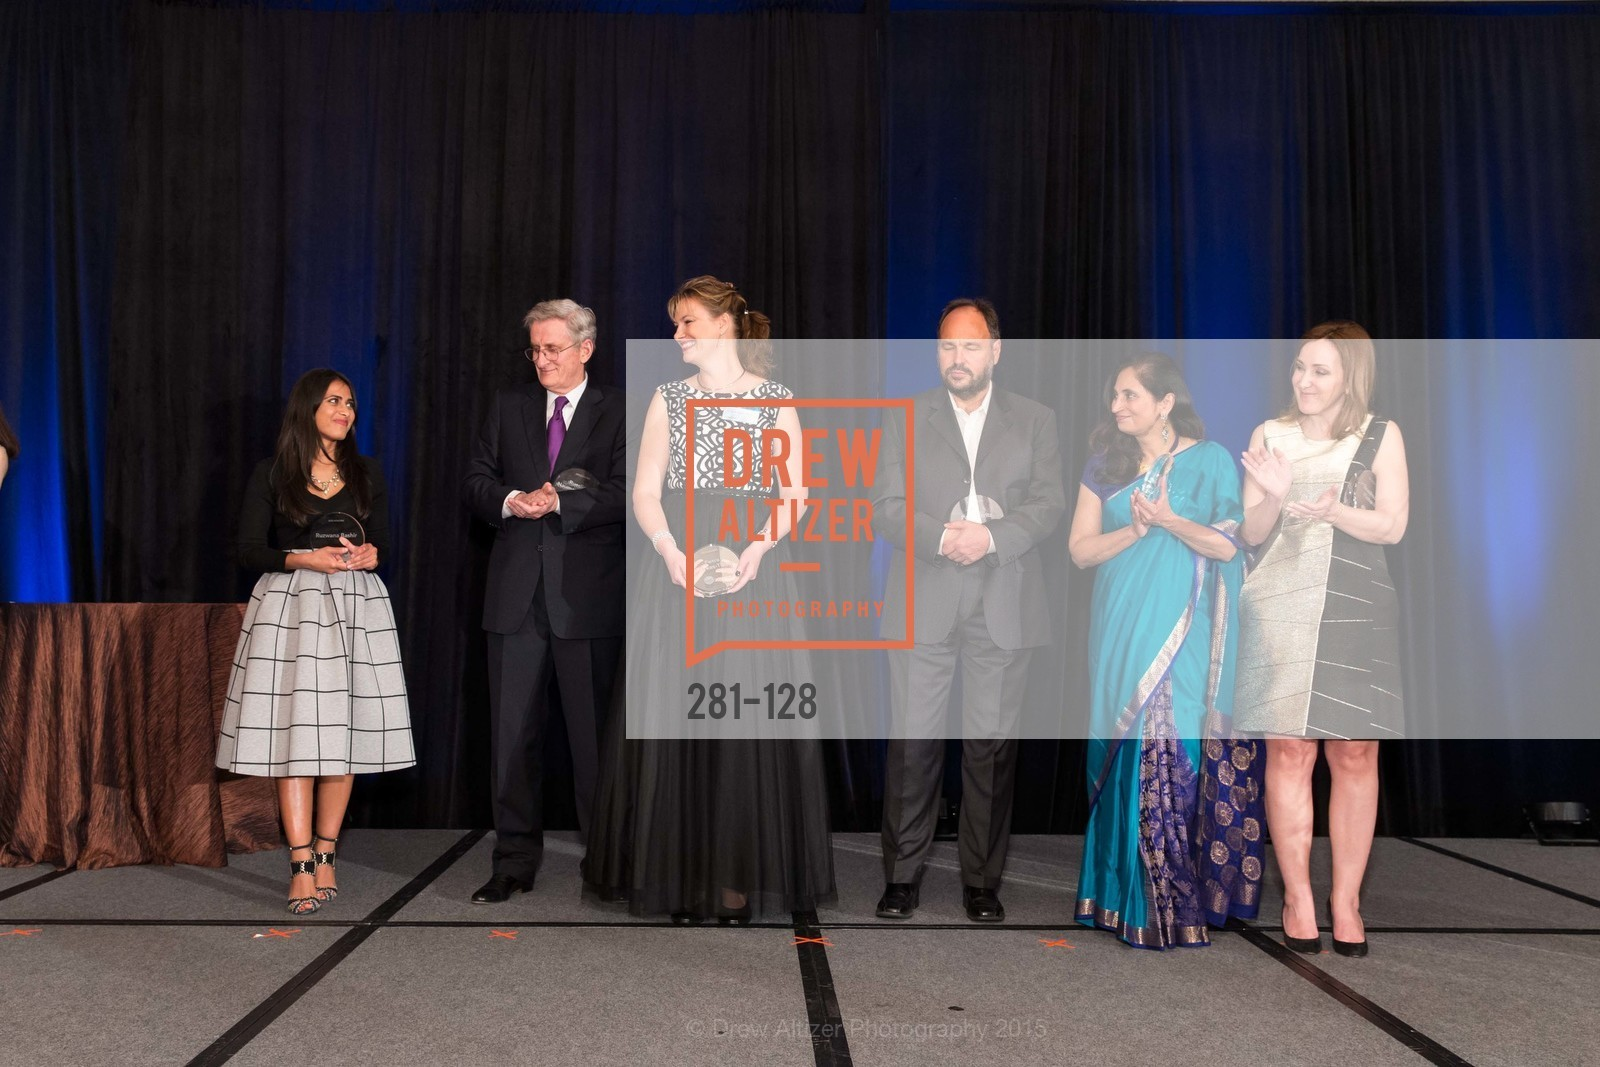 Ruzwana Bashir, Ruediger Naumann-Etienne, Petra Dierkes-Thrun, Paul Maritz, Padmasree Warrior, Noosheen Hashemi, World Affairs Council Awards Dinner: Global Actors | Global Reach | Global Impact, Four Seasons San Francisco, May 25th, 2015,Drew Altizer, Drew Altizer Photography, full-service agency, private events, San Francisco photographer, photographer california